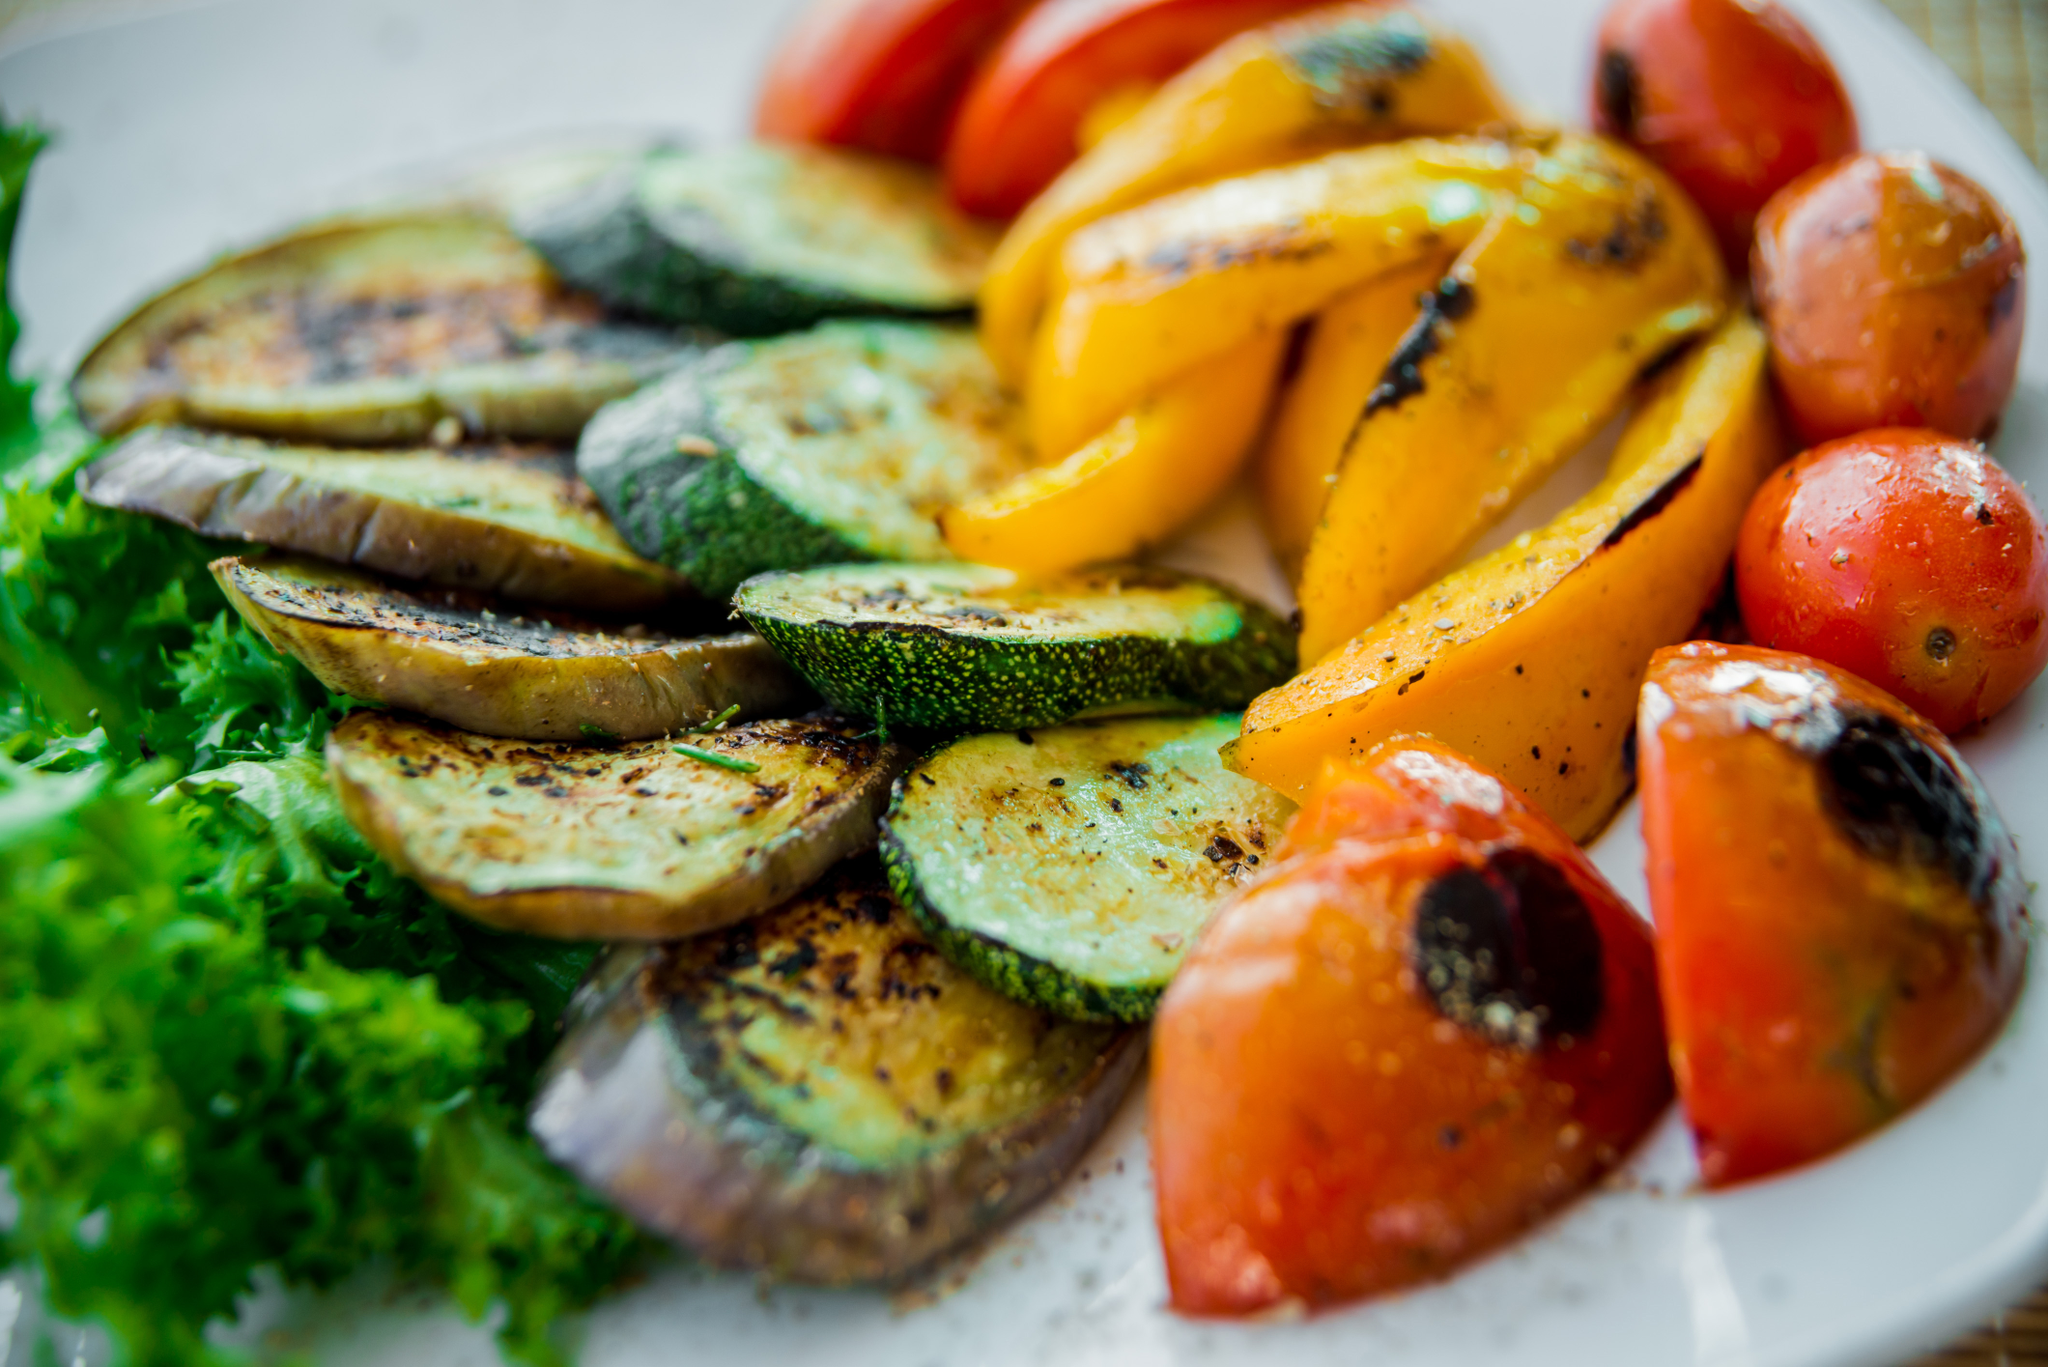 Healthy Barbecue Appetizers For Summer